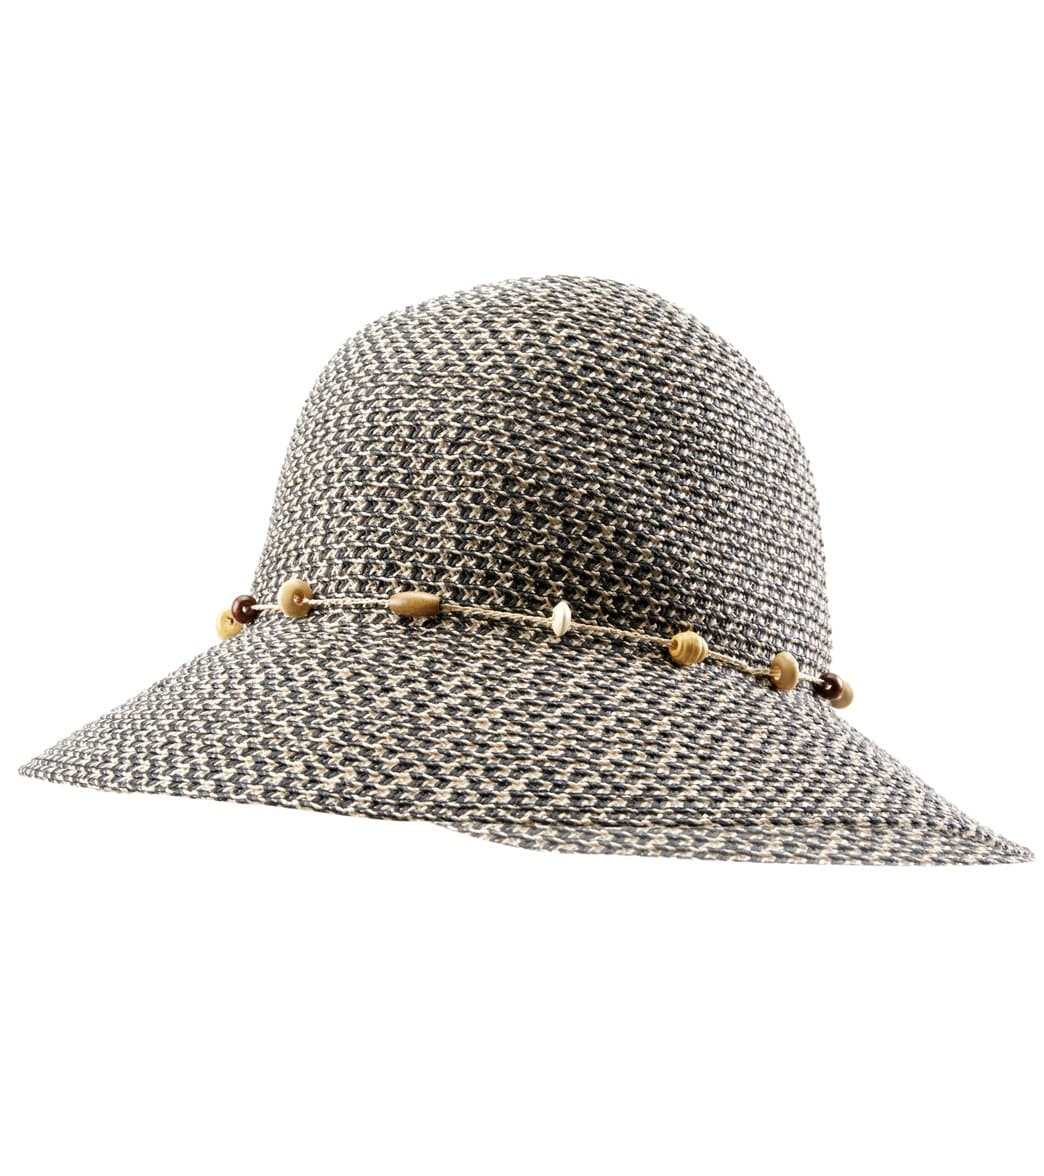 f03adb8af44bd Wallaroo Women s Naomi Sun Hat at SwimOutlet.com